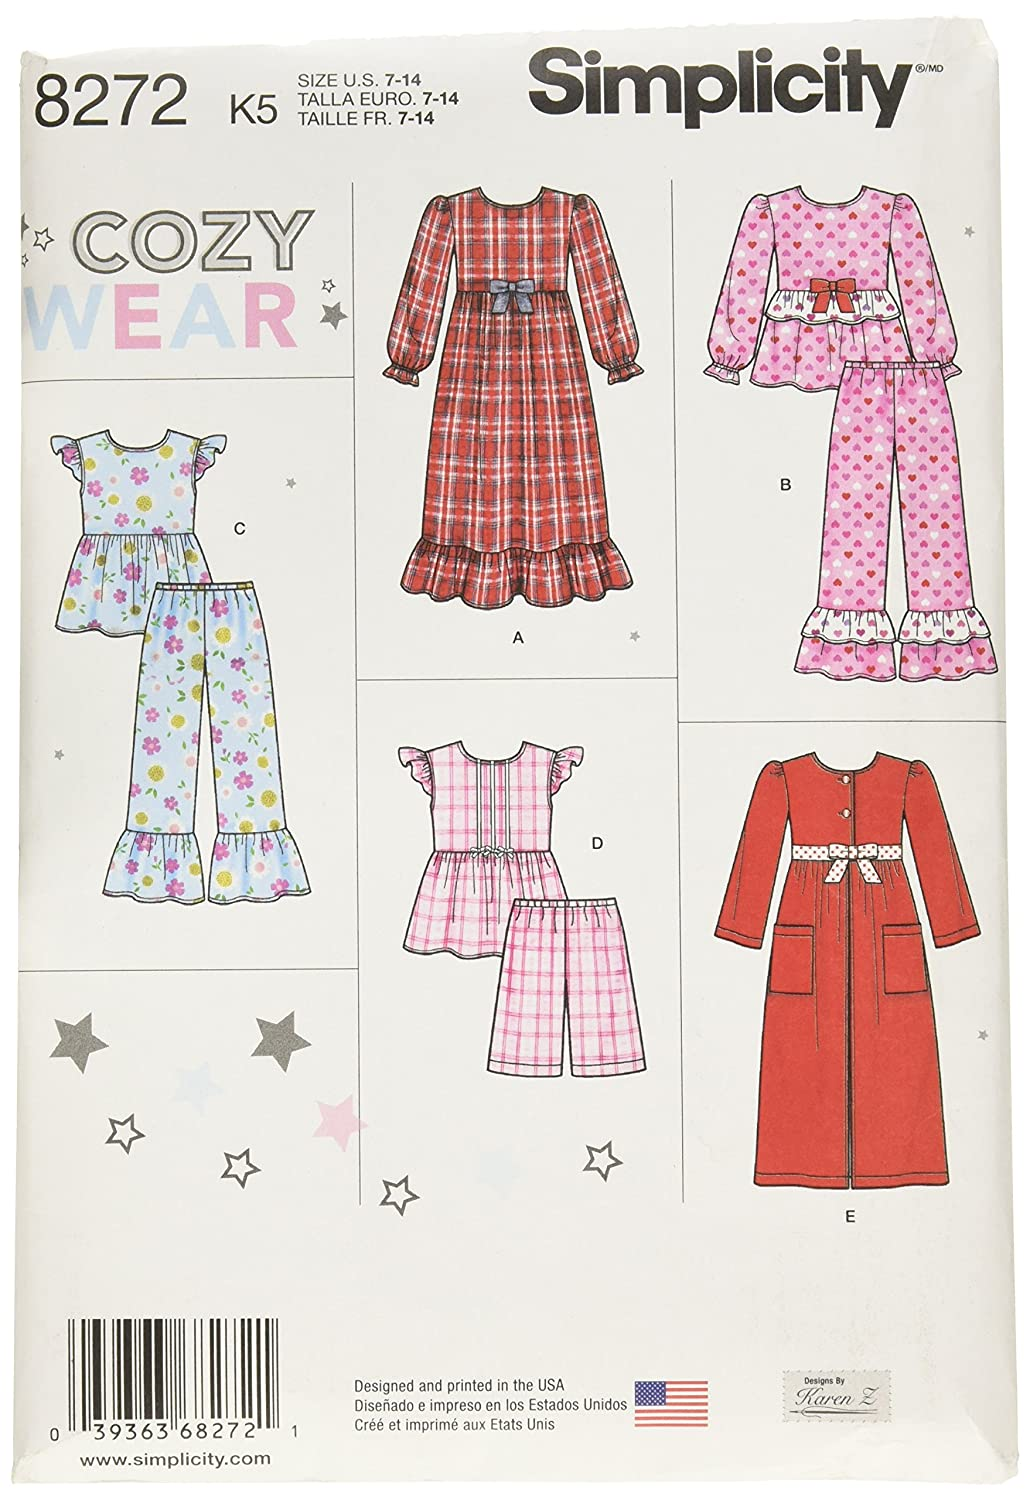 Simplicity Patterns 8272 Child's Girl's Sleepwear Robe, Size: K5 (7-8-10-12-14) OUTLOOK GROUP CORP US8272K5